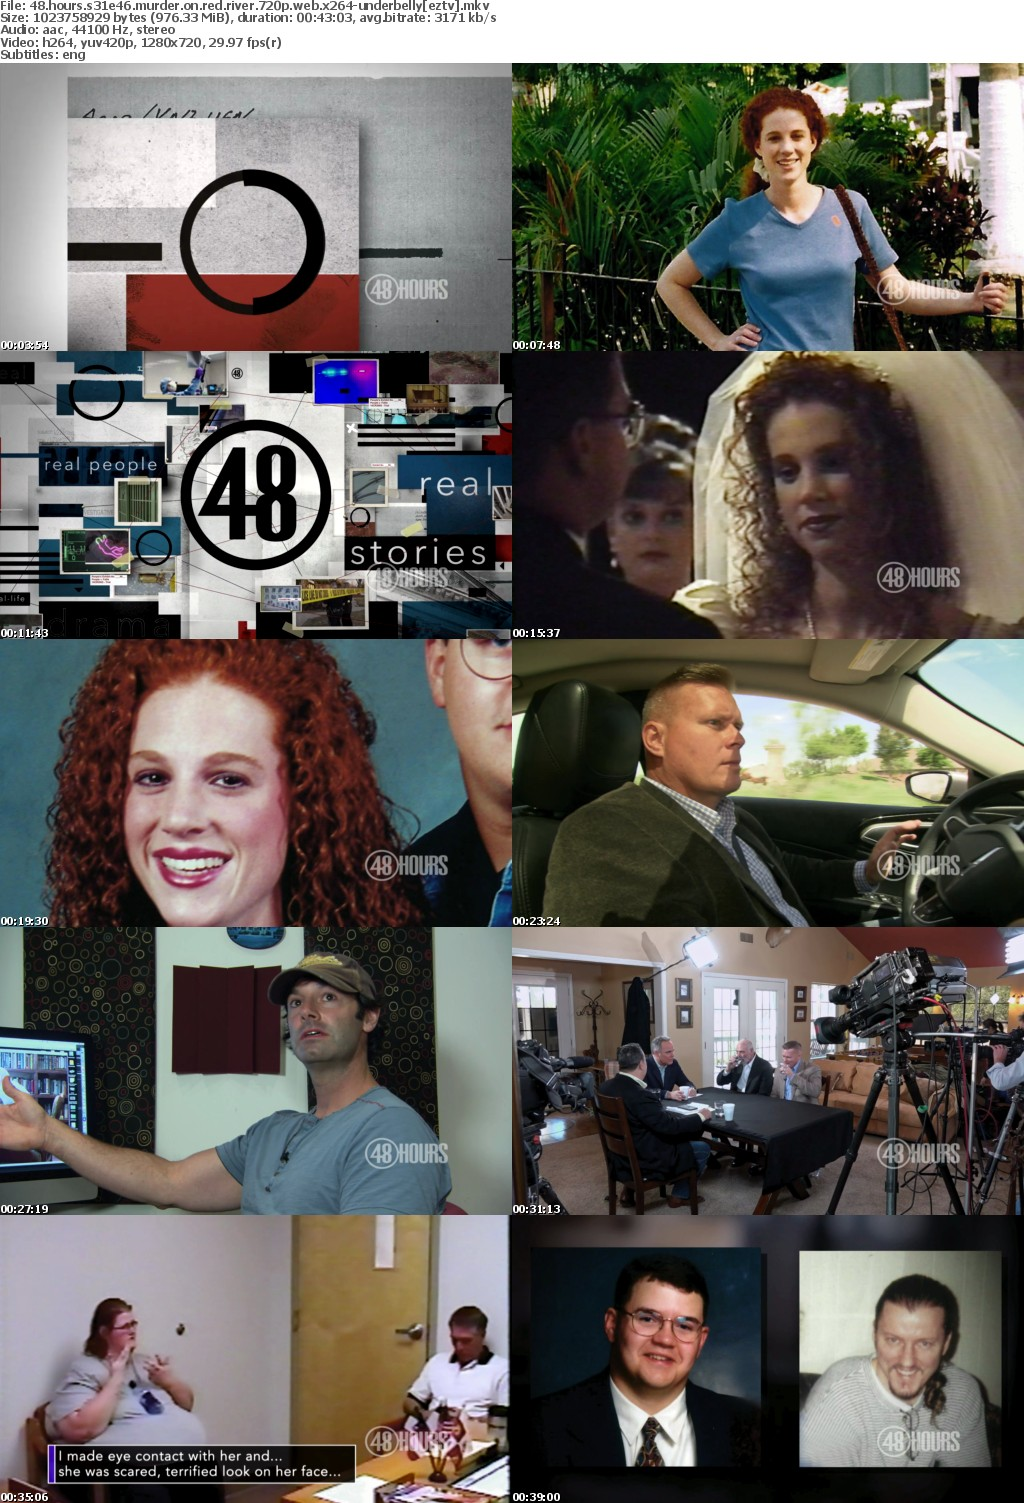 48 Hours S31E46 Murder on Red River 720p WEB x264 UNDERBELLY